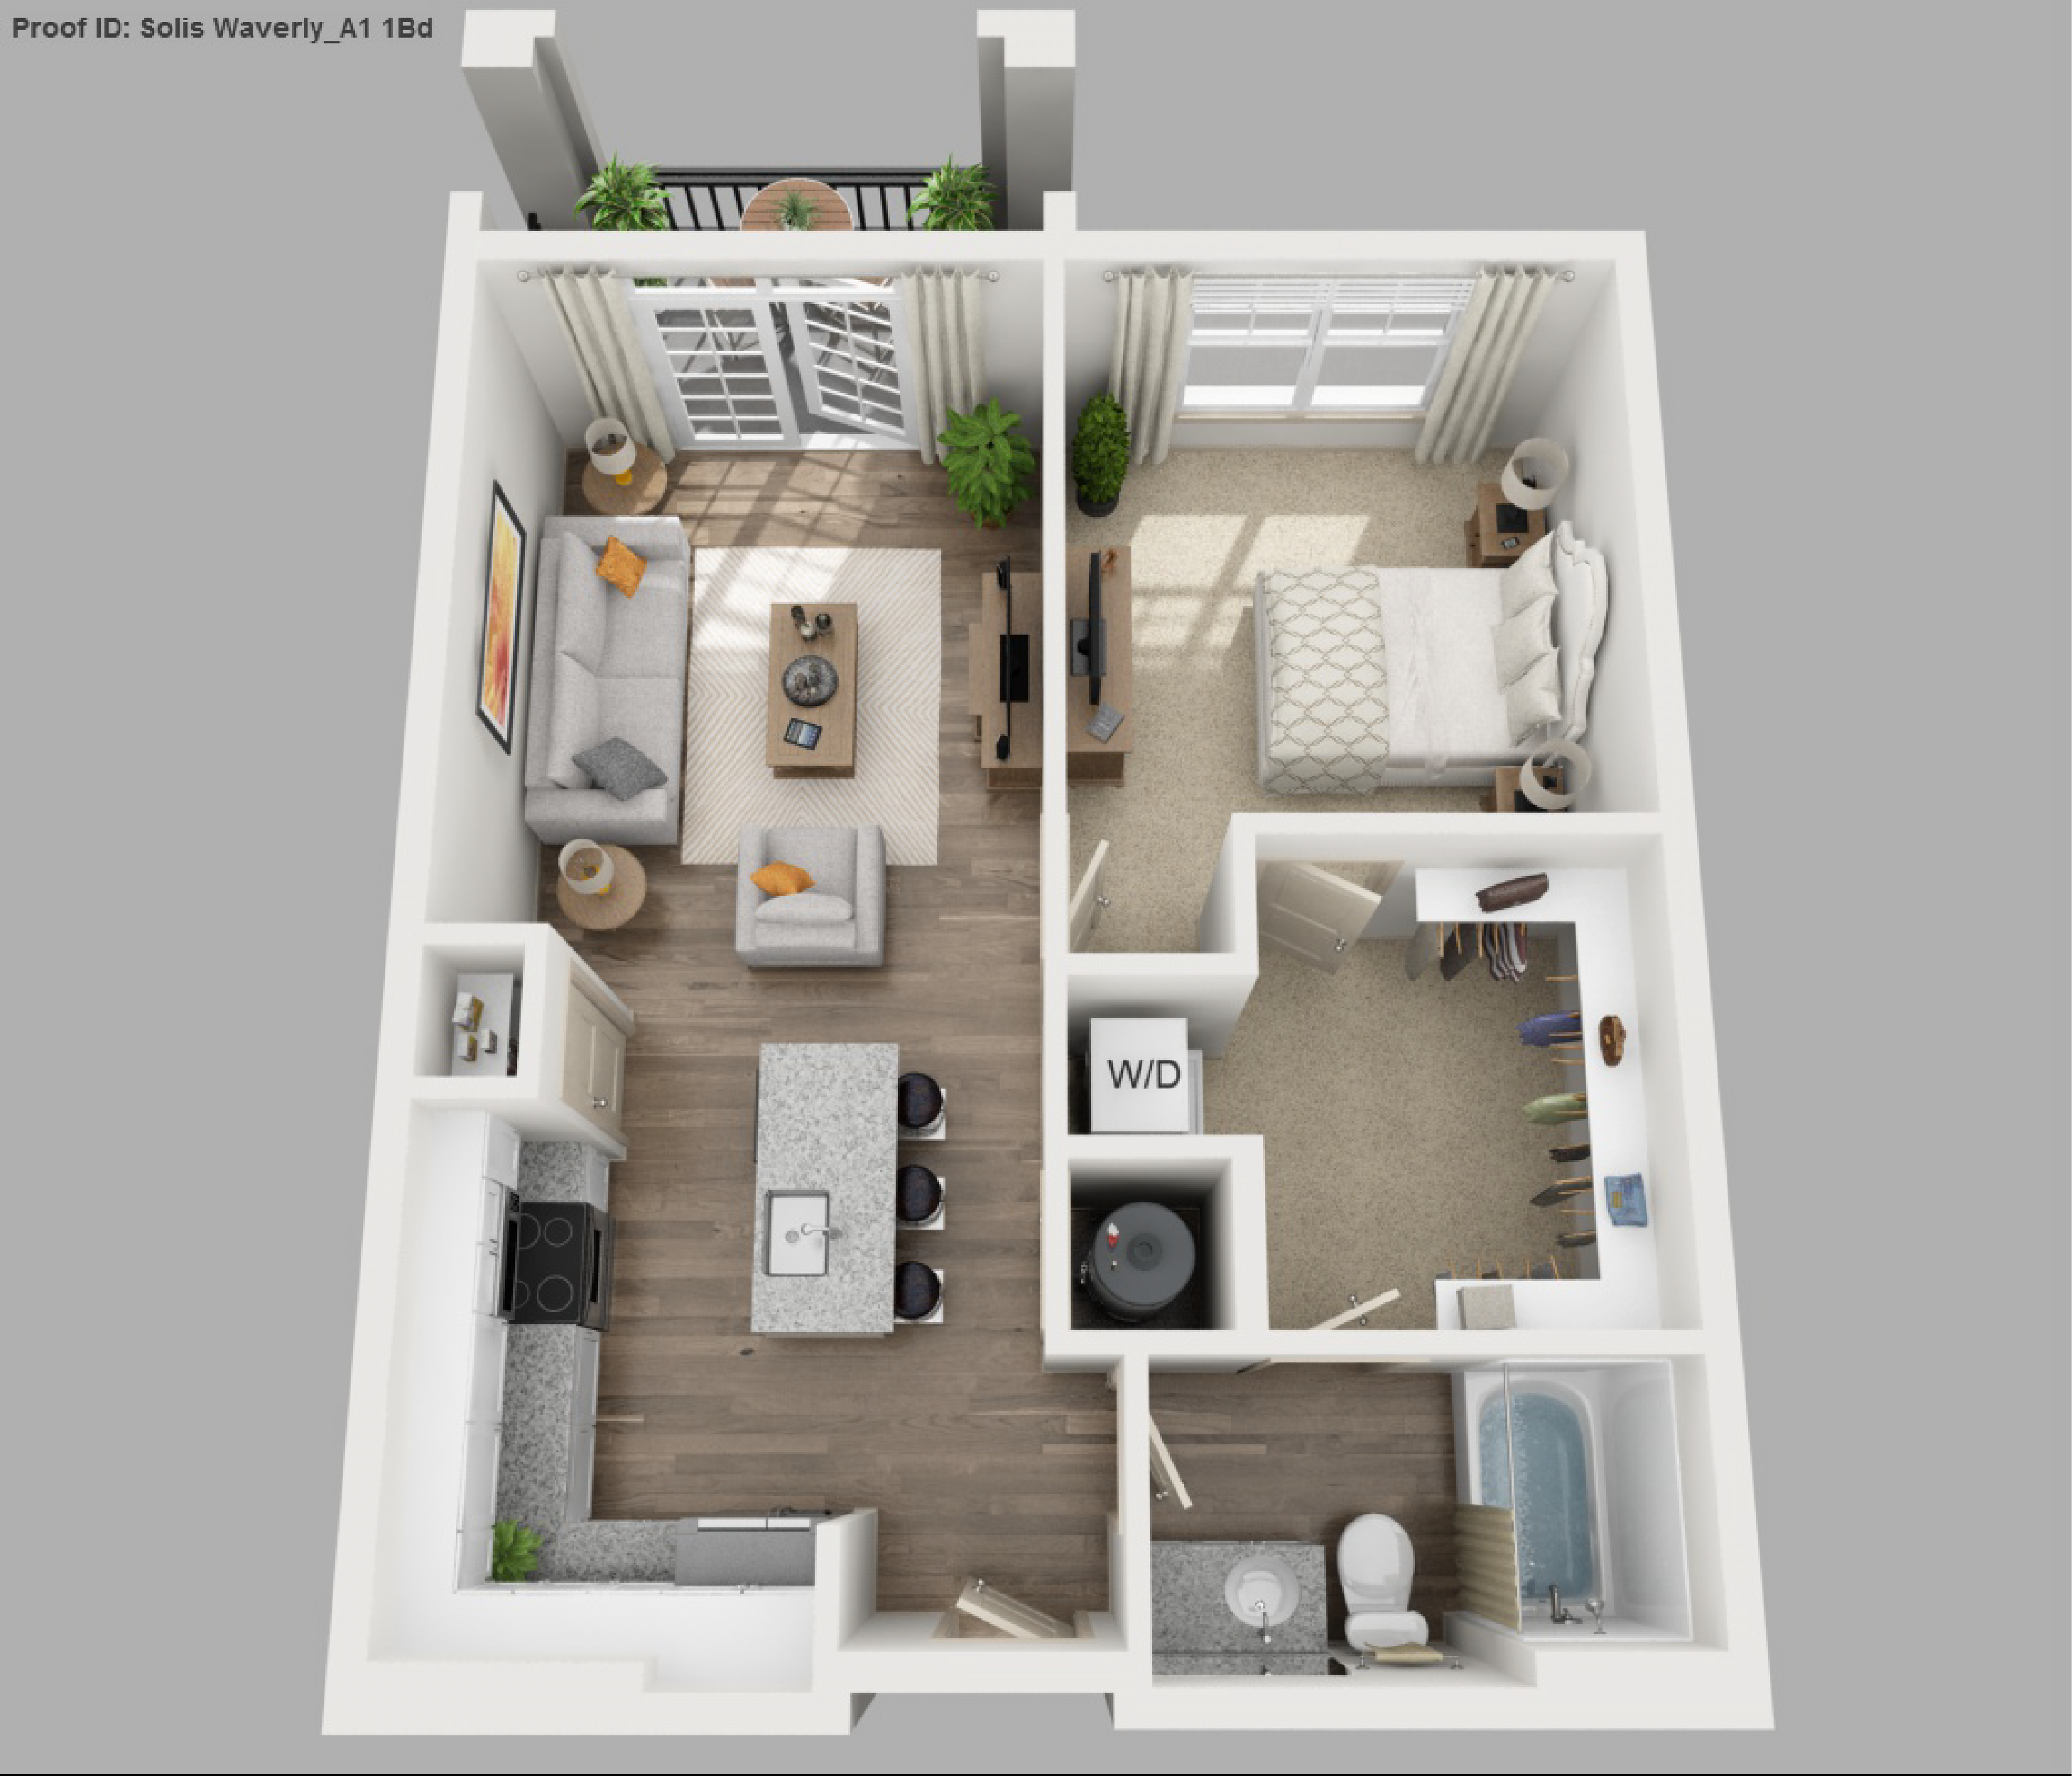 Solis apartments floorplans waverly for 1 bedroom apartment plans